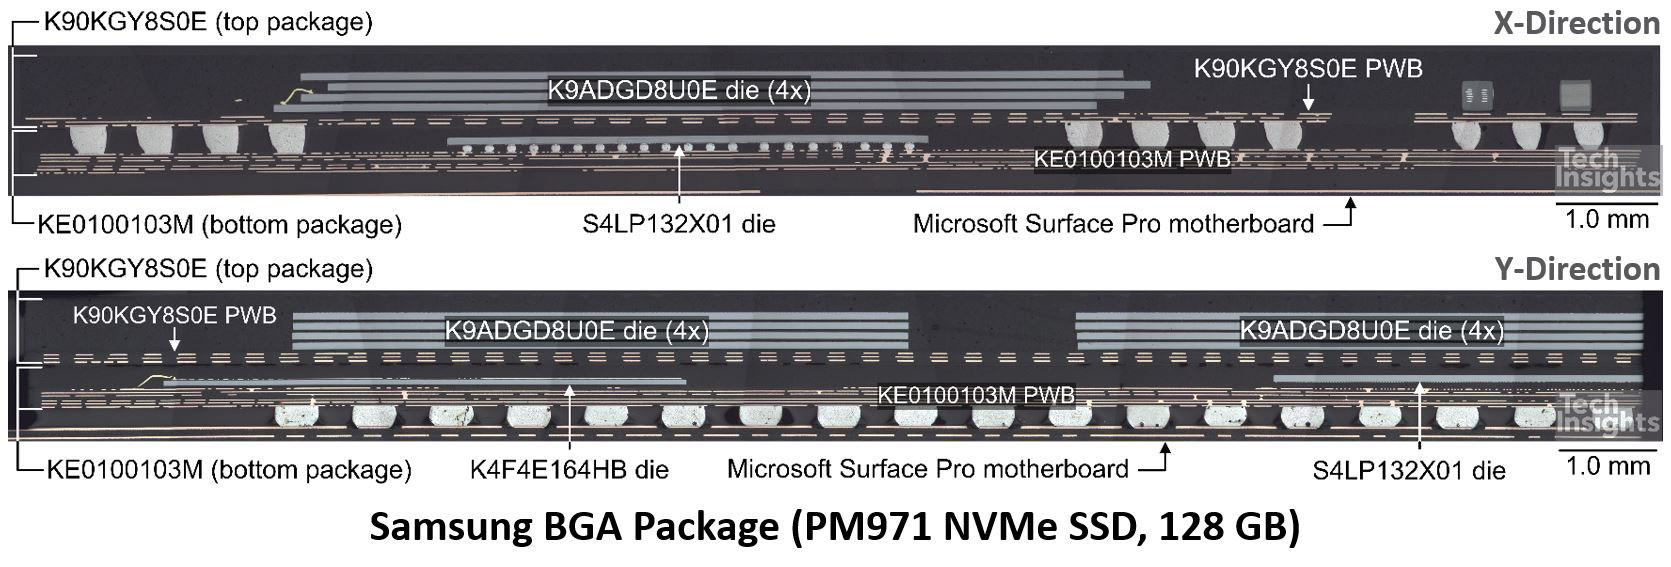 Samsung BGA Package (PM971 NVMe SSD, 128 GB)